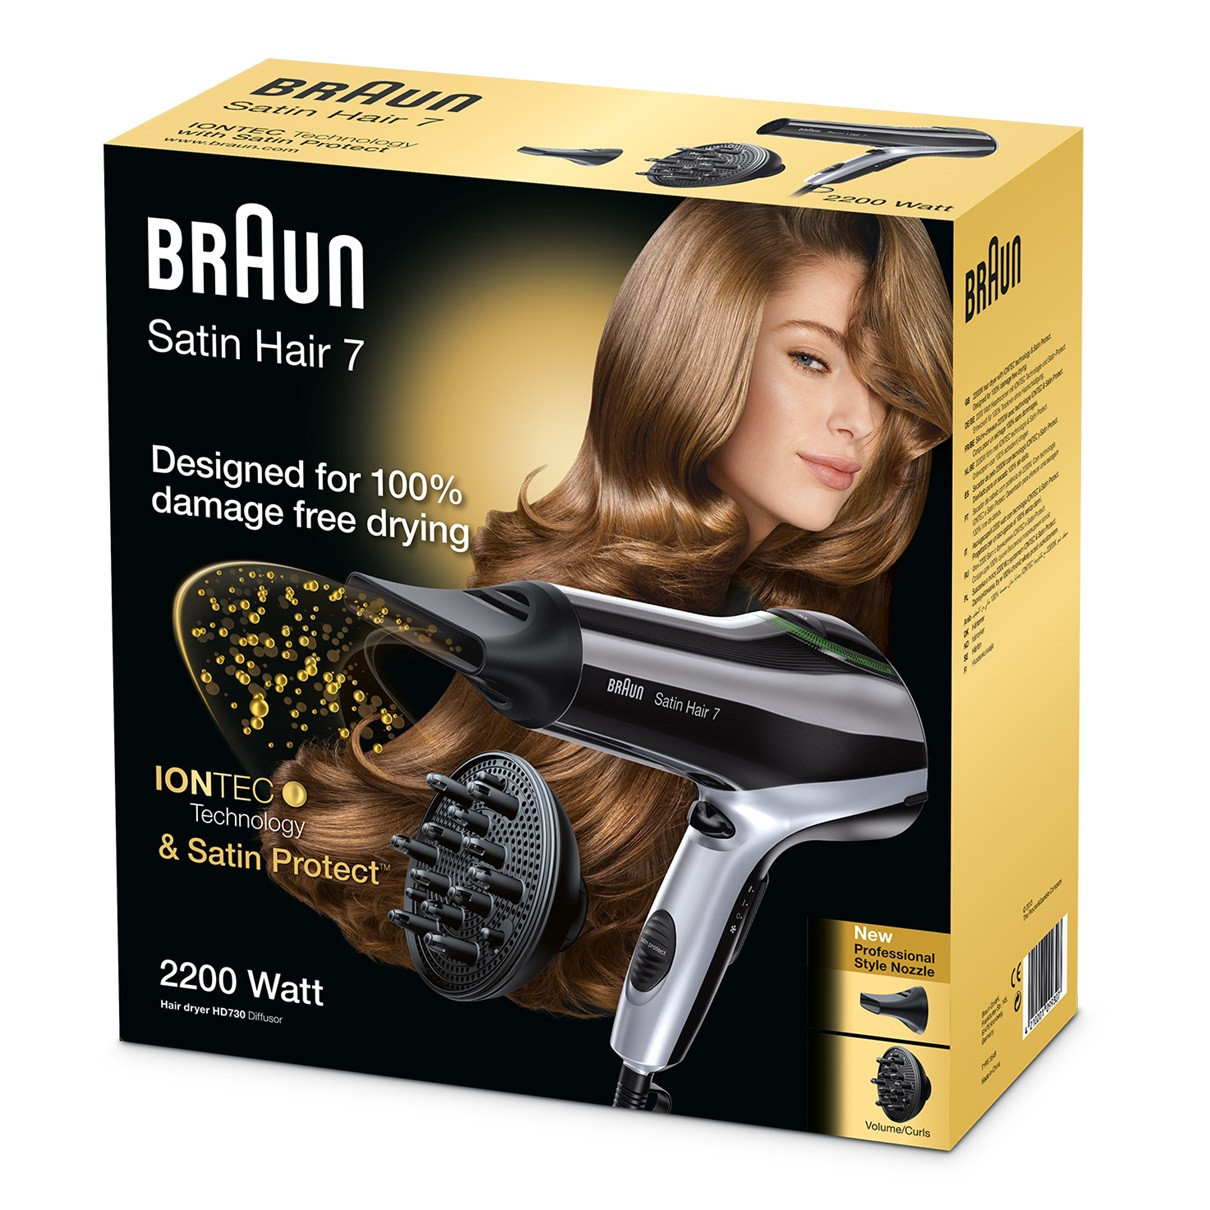 Braun Satin Hair 7 HD730 with IONTEC, Satin Protect - Packaging